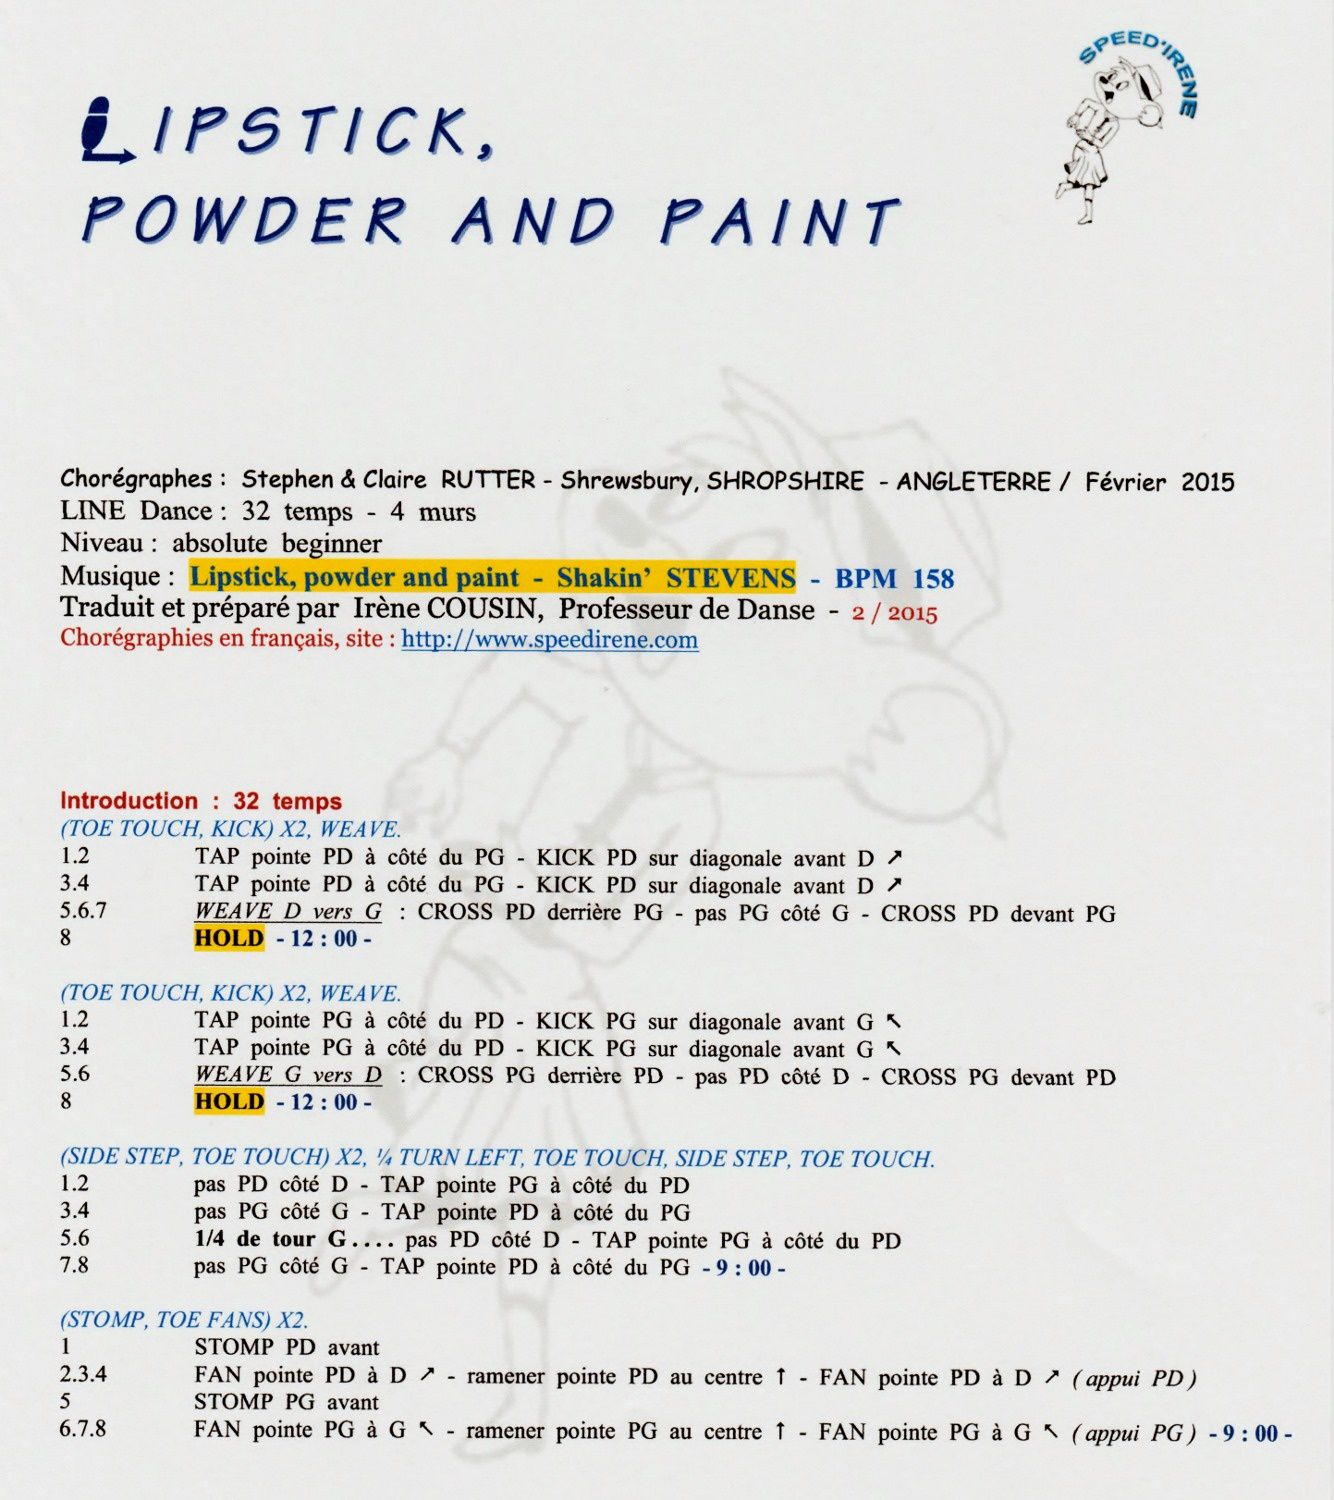 LIPSTICK, PODER AND PAINT